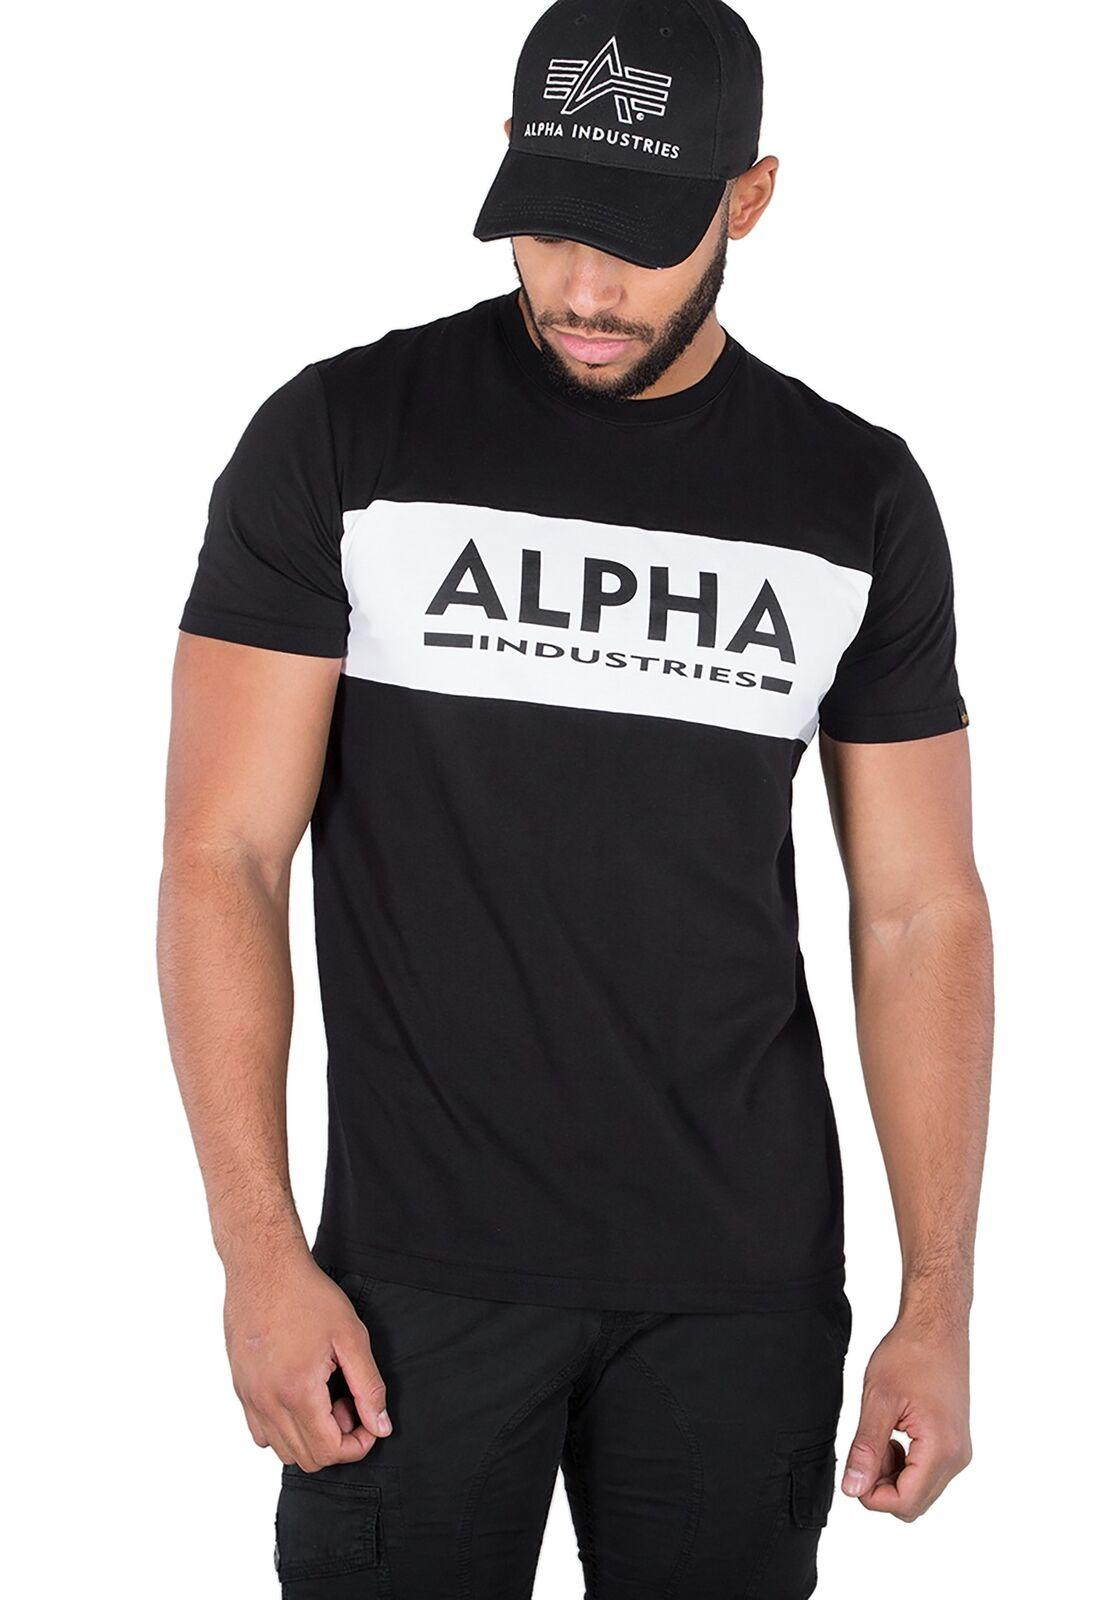 the best attitude dd0ea 2c4c3 Alpha Industries Herren Men T-Shirt Inlay T Oberteil Shirt MA1 S bis 3XL  NEU colour jersey Print t shirt